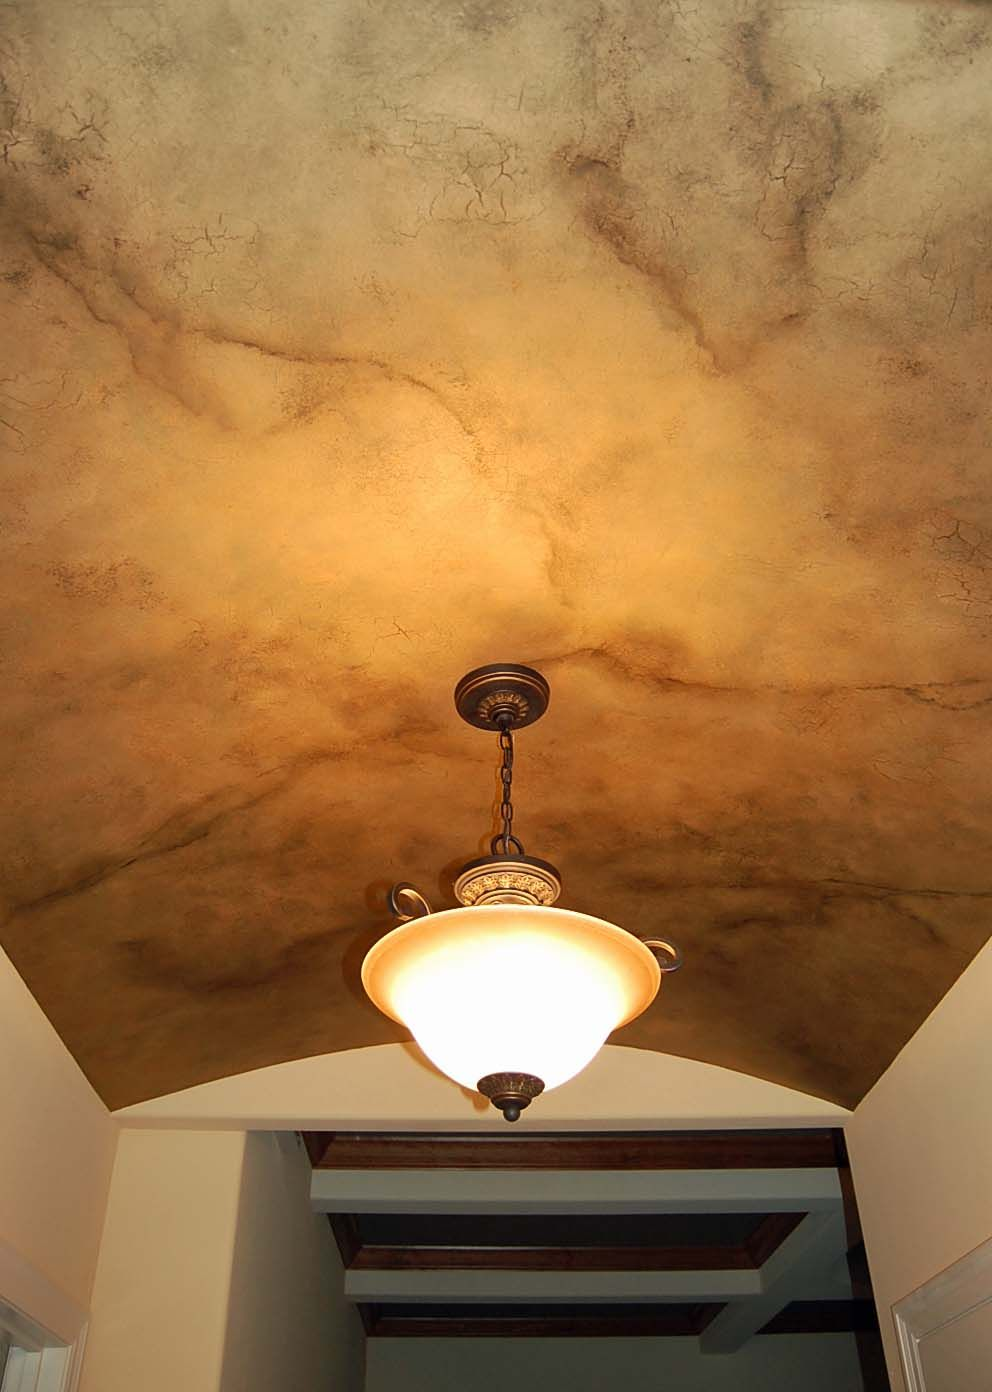 Sponge Painting Faux Finish Roller COMBO   Painted walls, Glaze ...